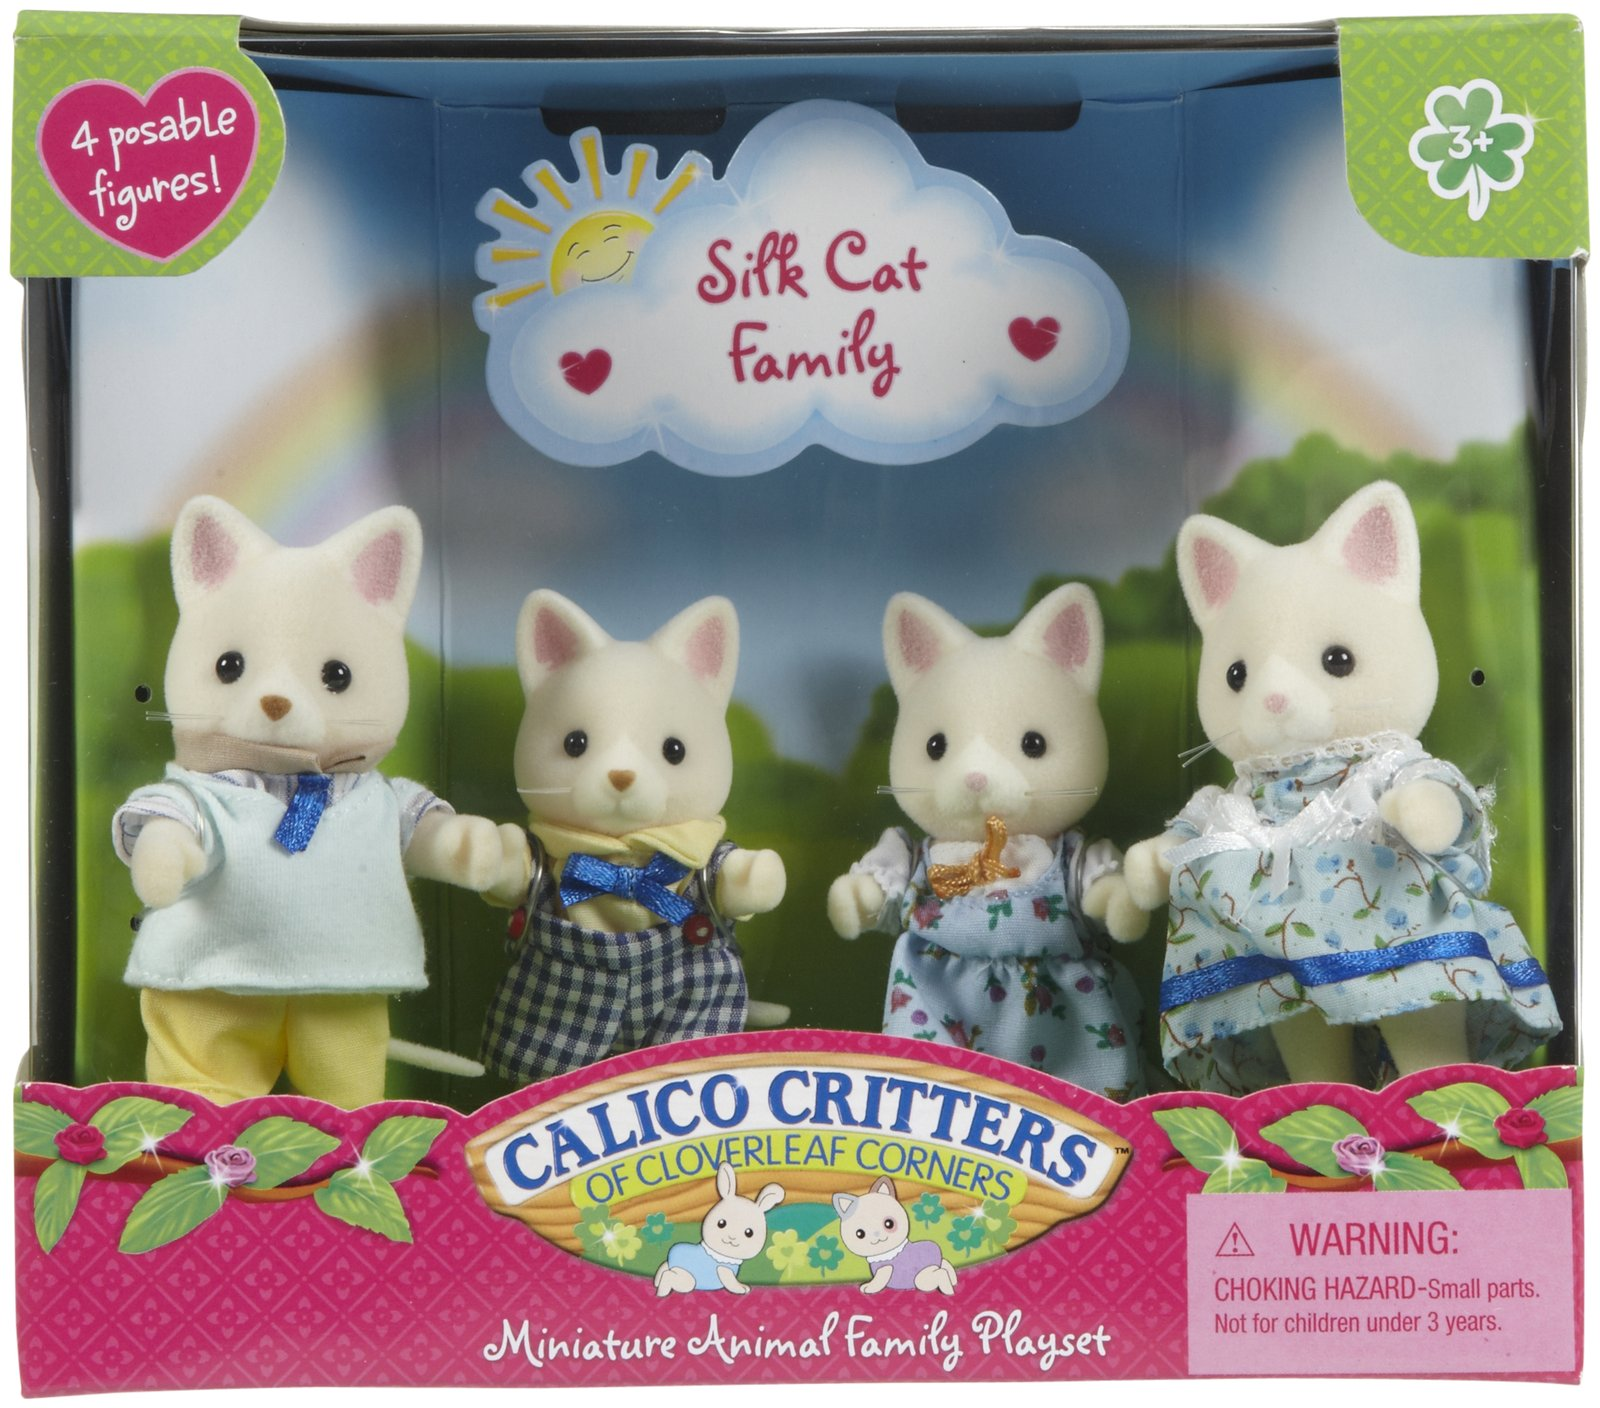 Calico Critters Cat Family 1600x1408